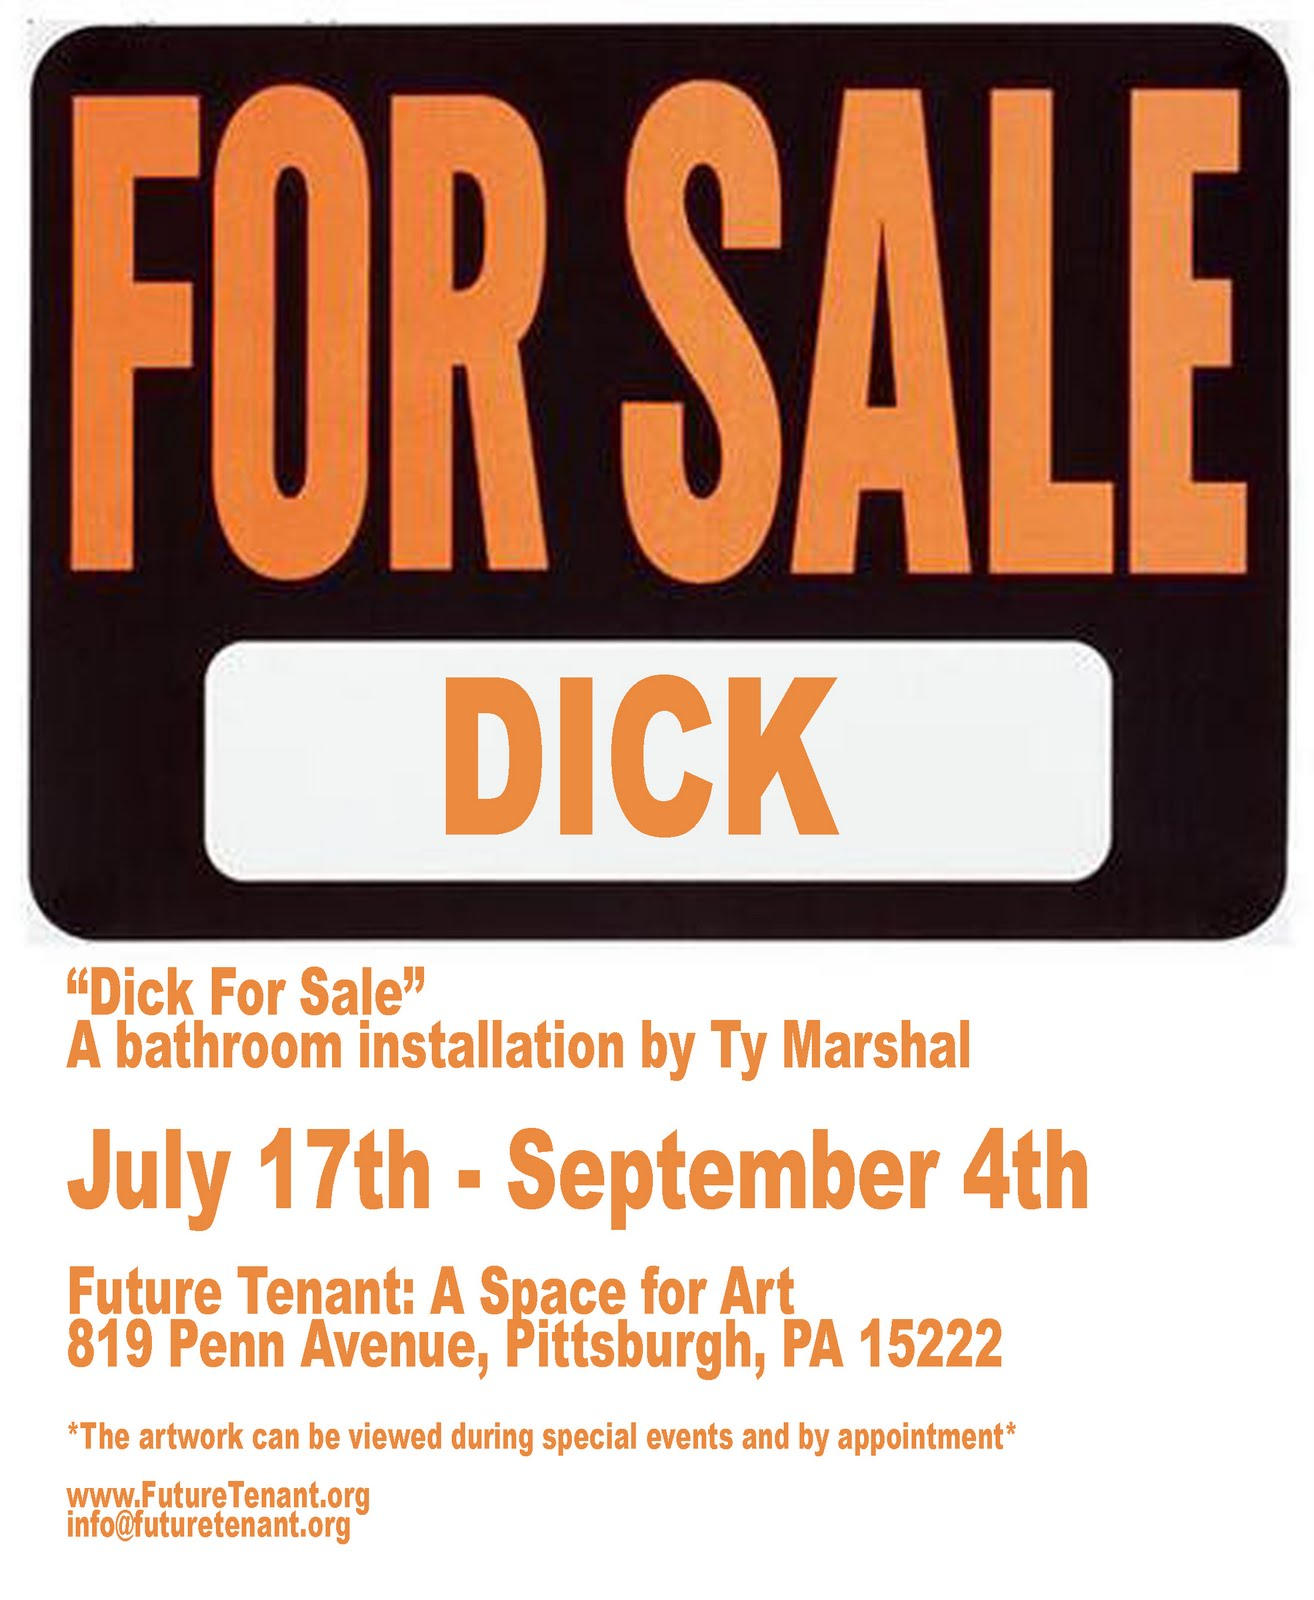 Dicks on sale can